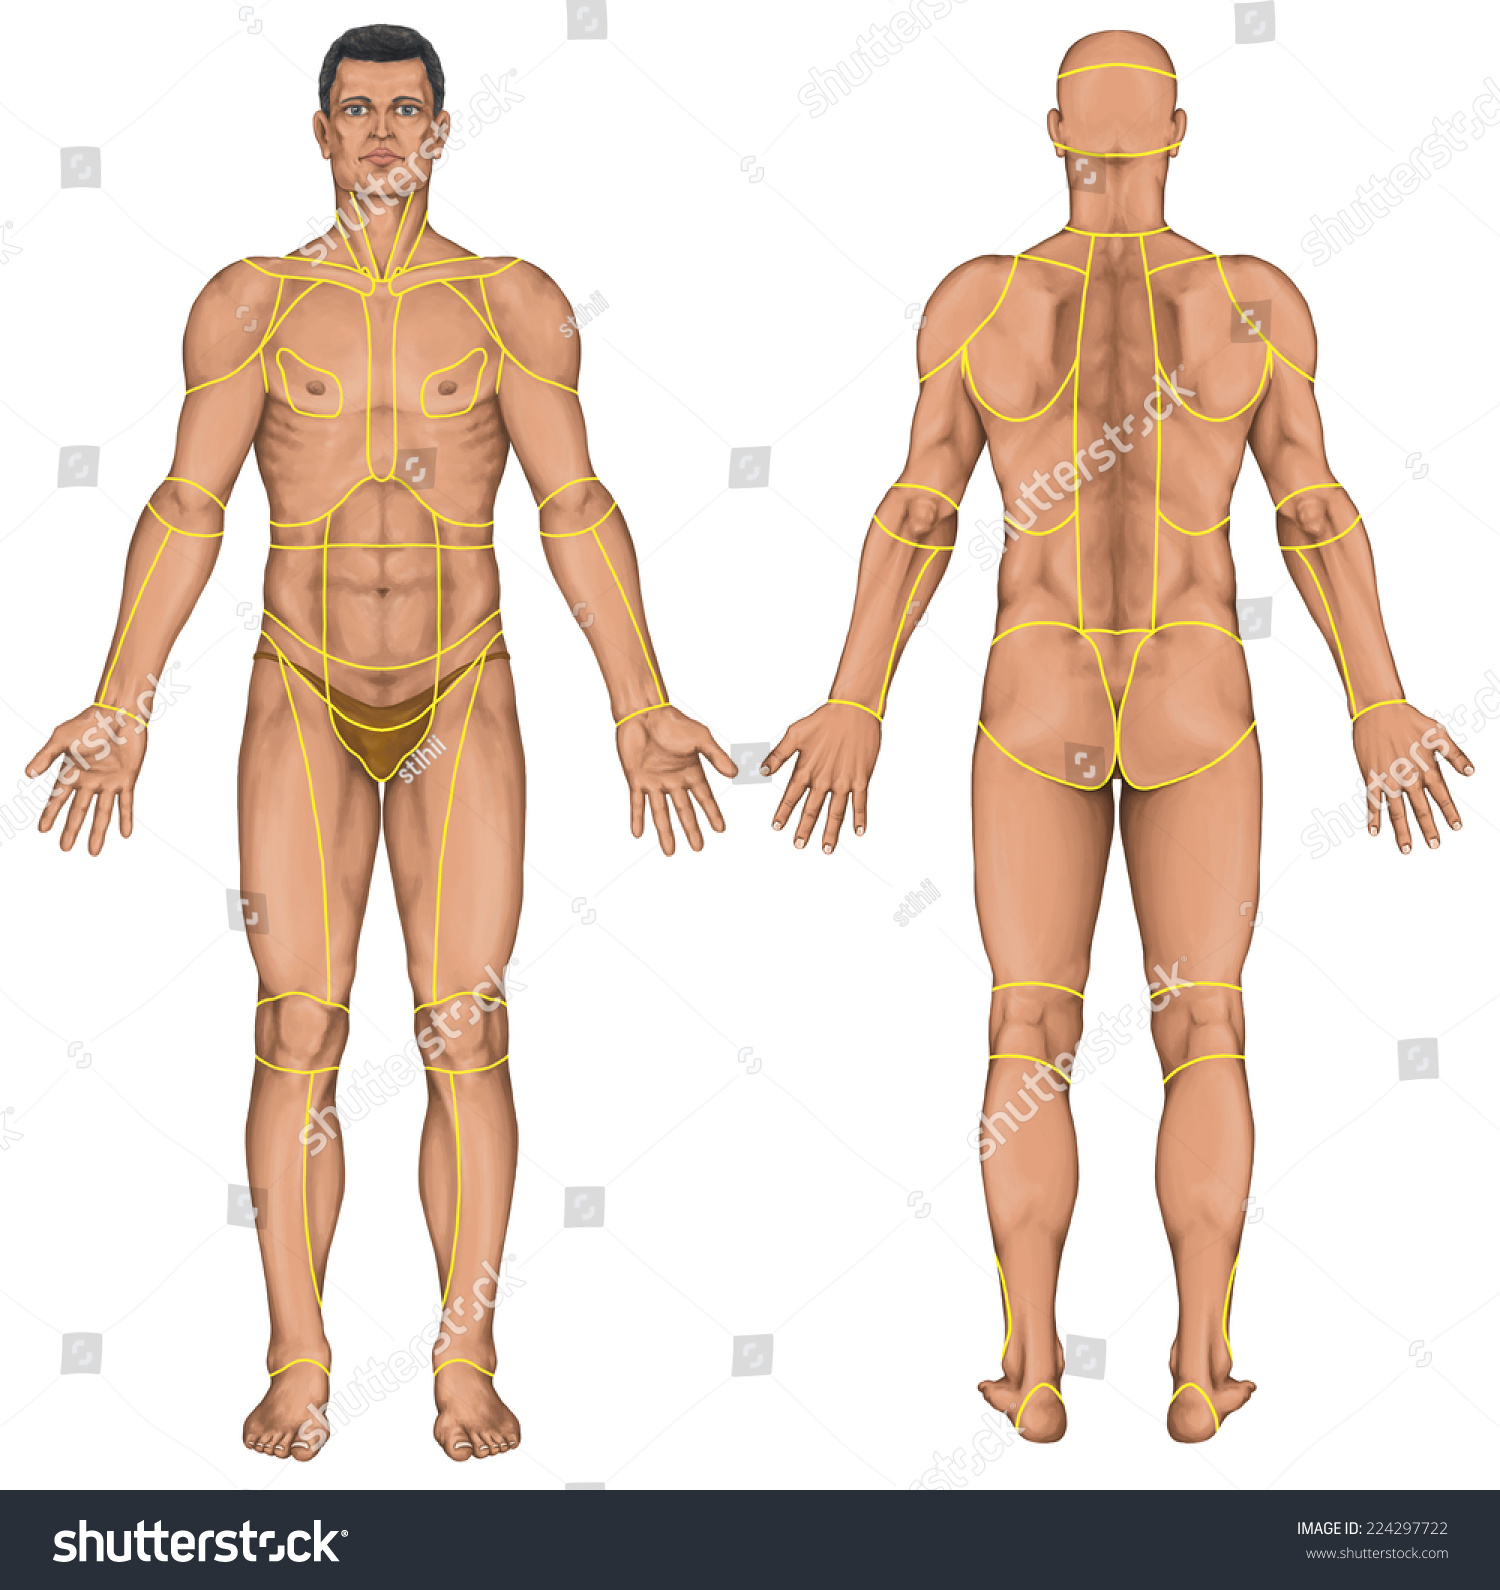 Royalty Free Stock Illustration of Region Human Body Regions ...